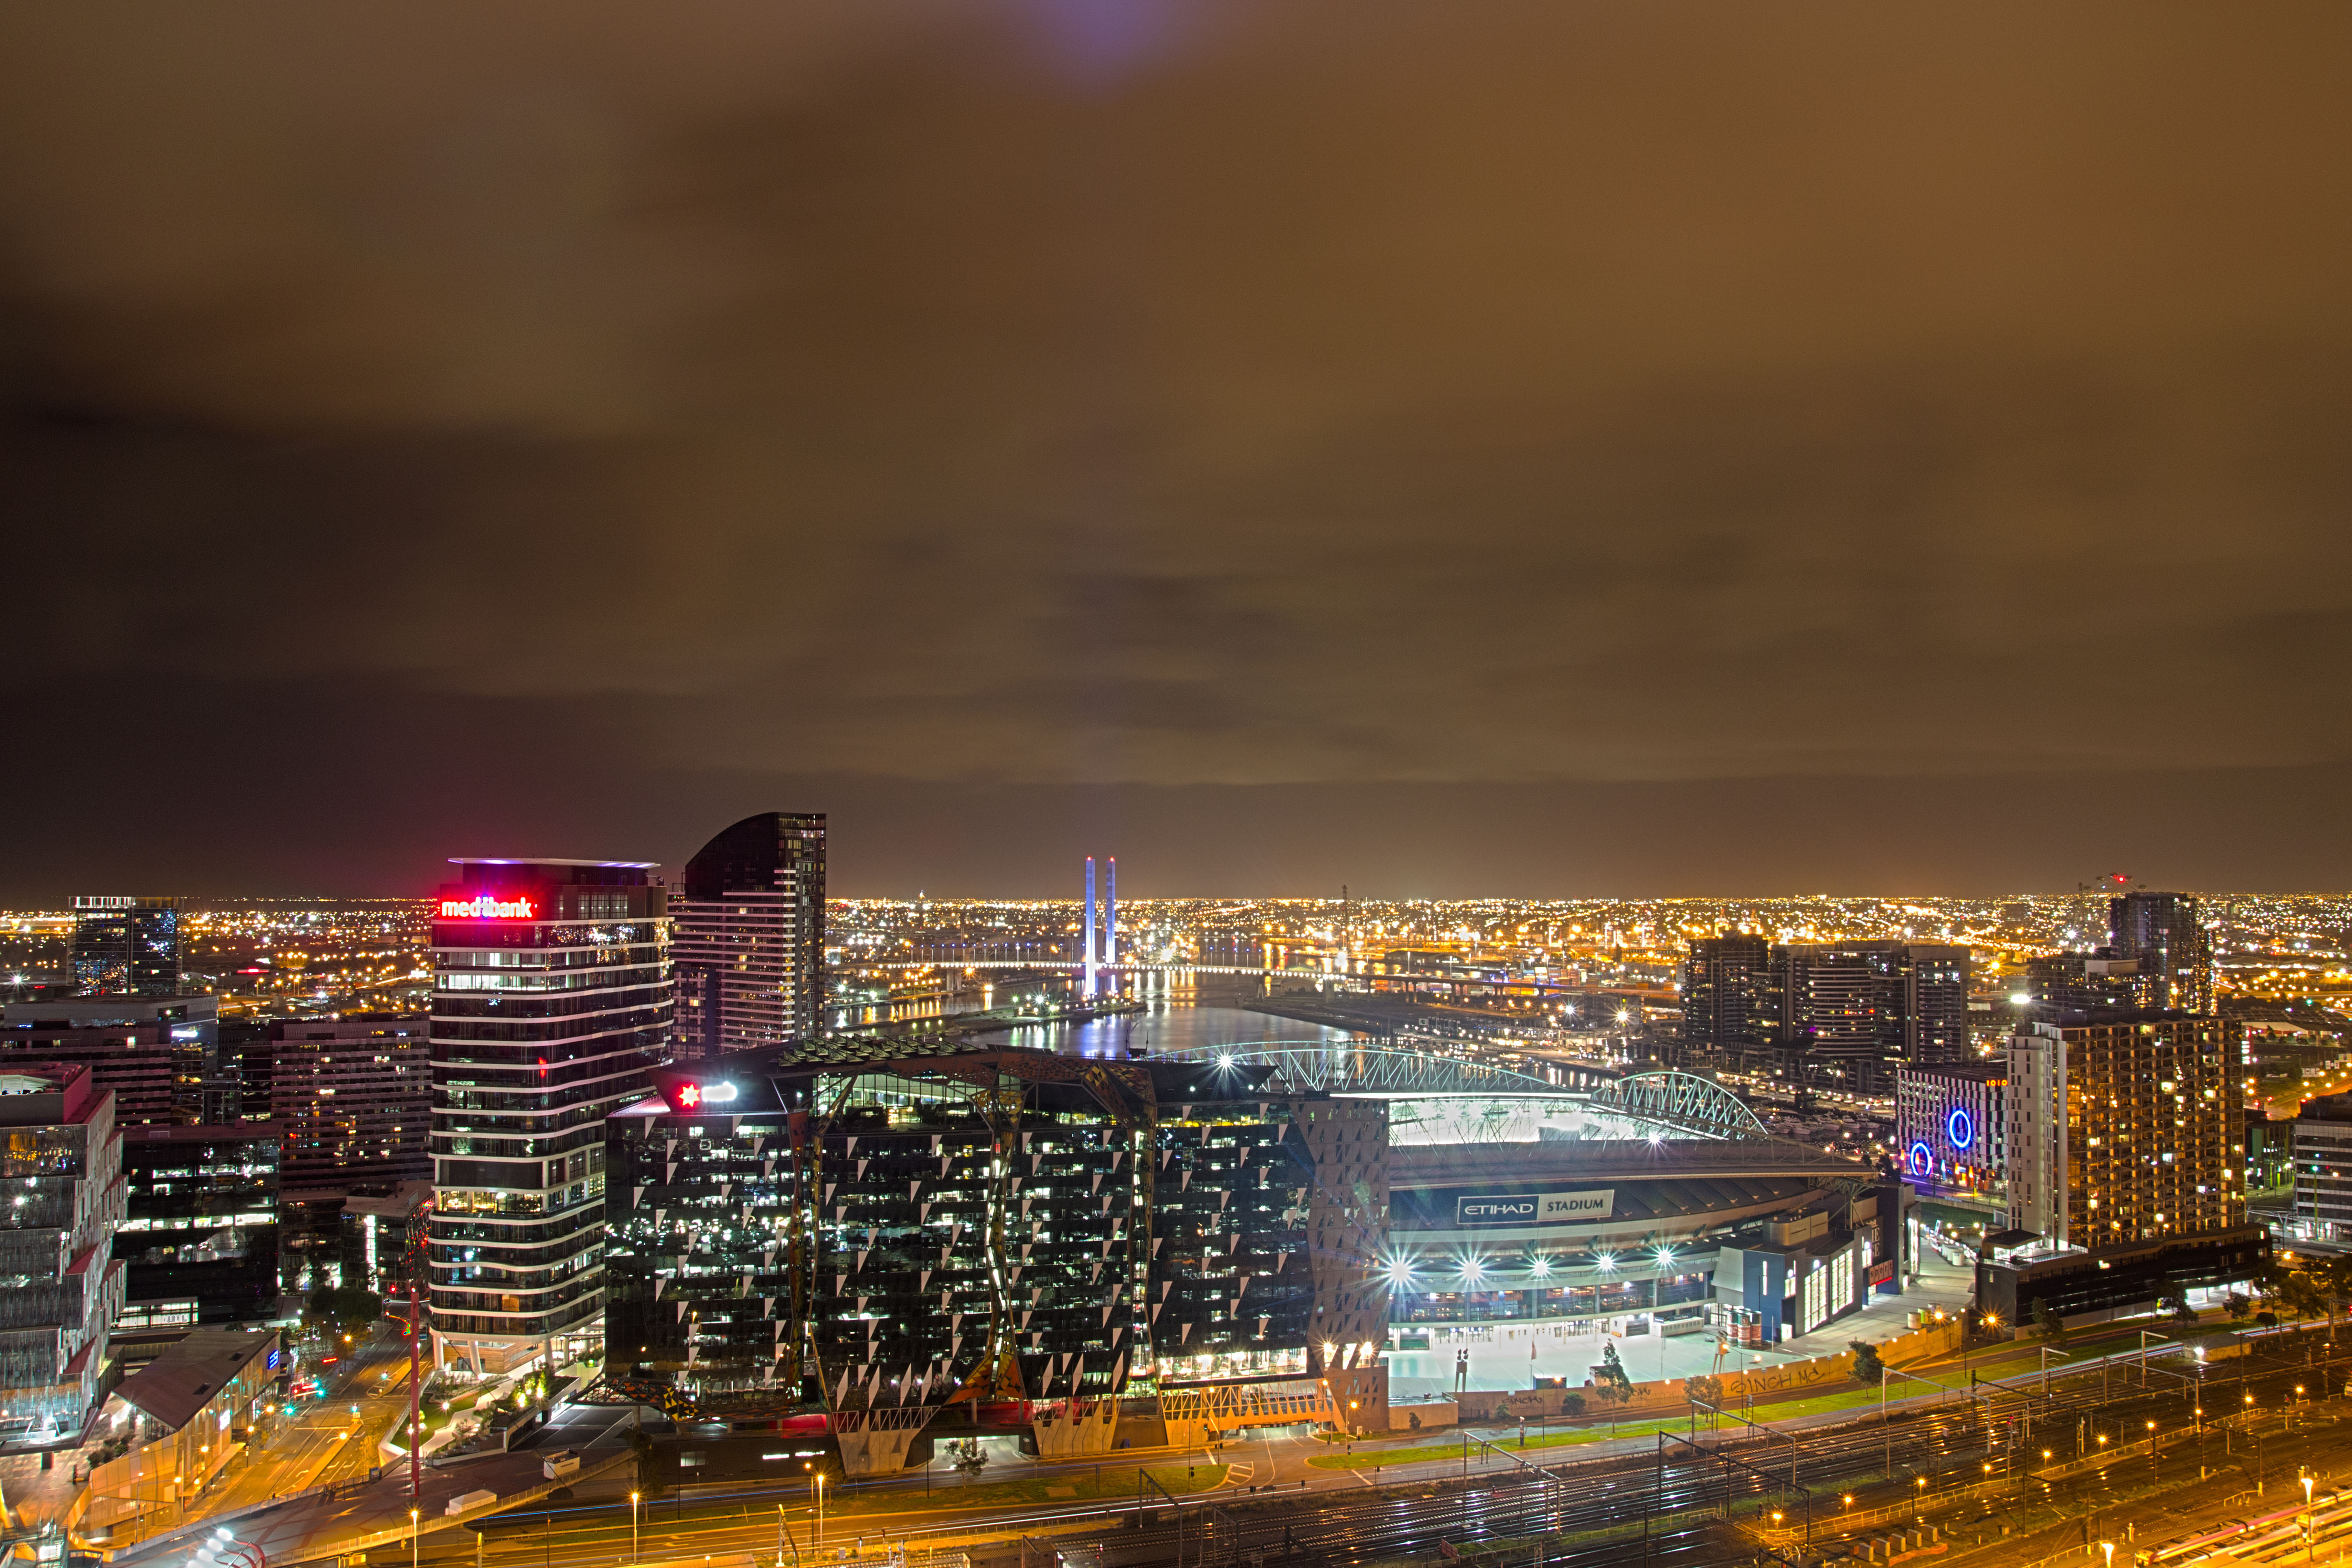 Manchester 4k Ultra HD Wallpaper   Background Image   5058x3372   ID:647407 - Wallpaper Abyss